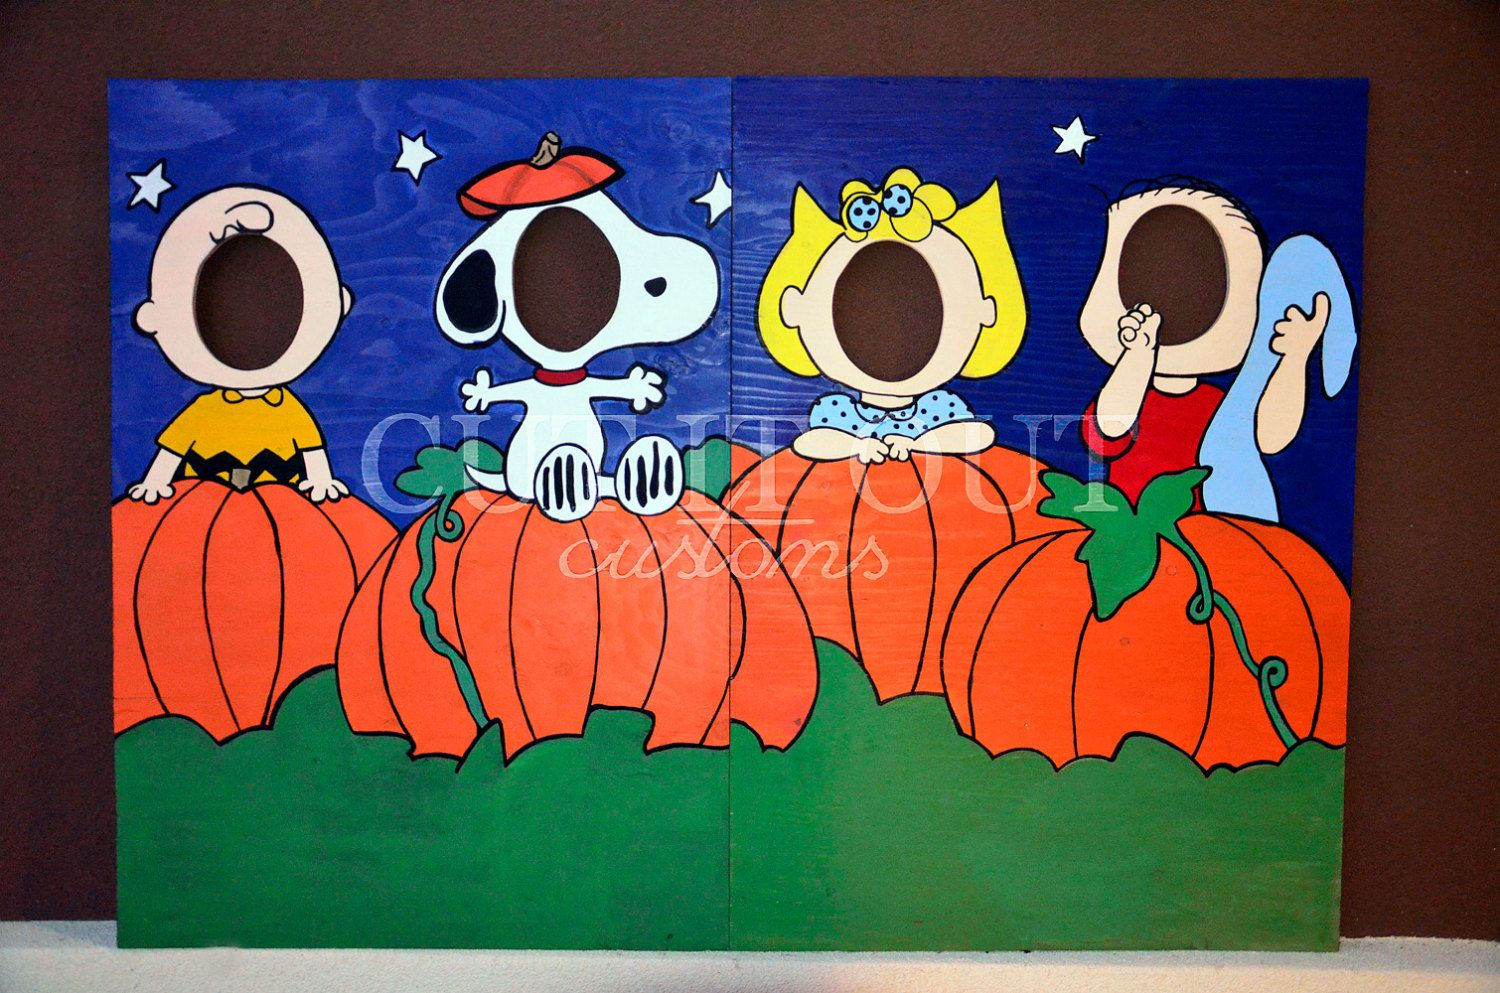 charlie brown peanuts gang halloween photo prop lawn art snoopy standee holiday - Halloween Photography Props